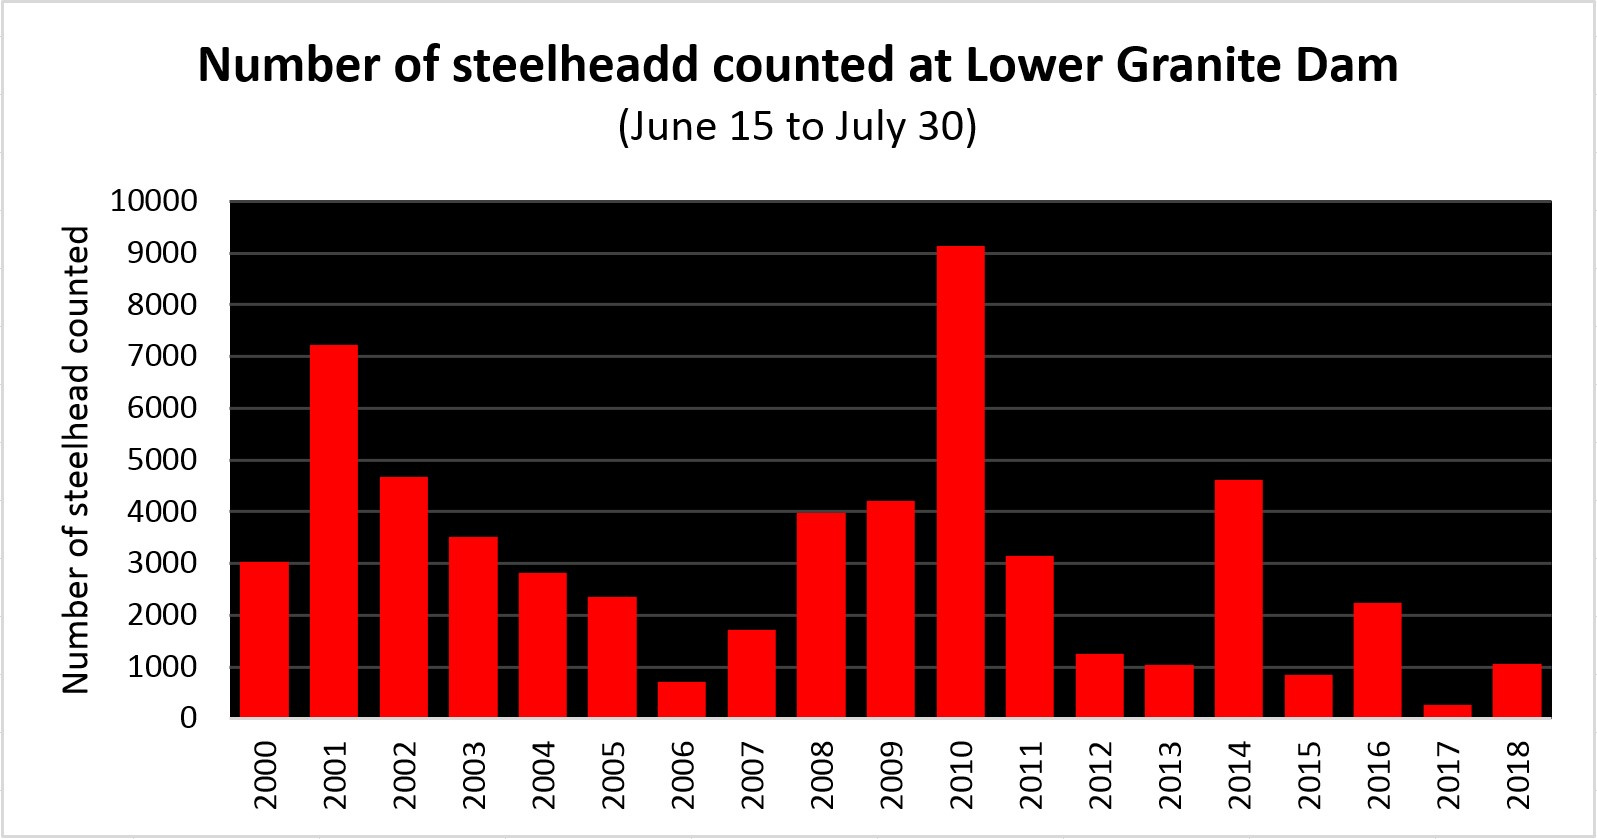 steelhead_counts_comparison_at_lgd_through_july_30